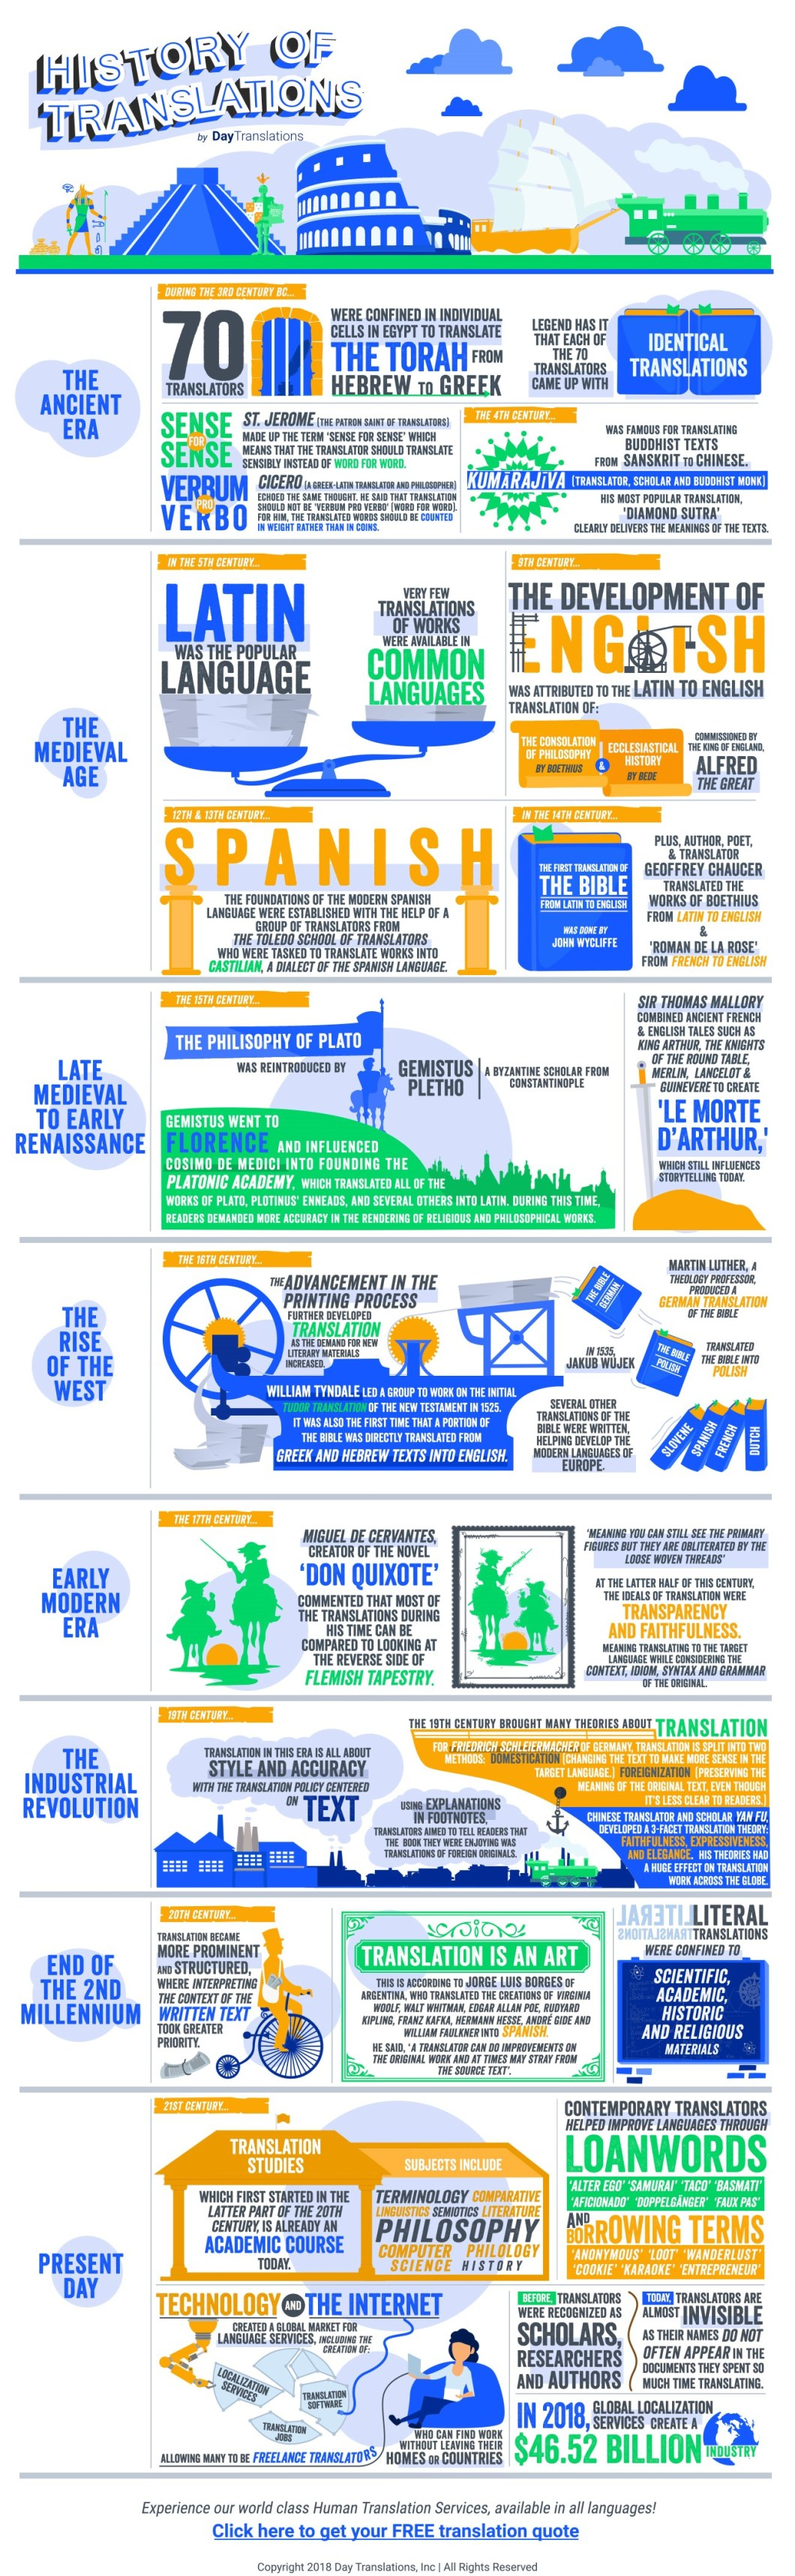 The Transformational History of Translations - Infographic